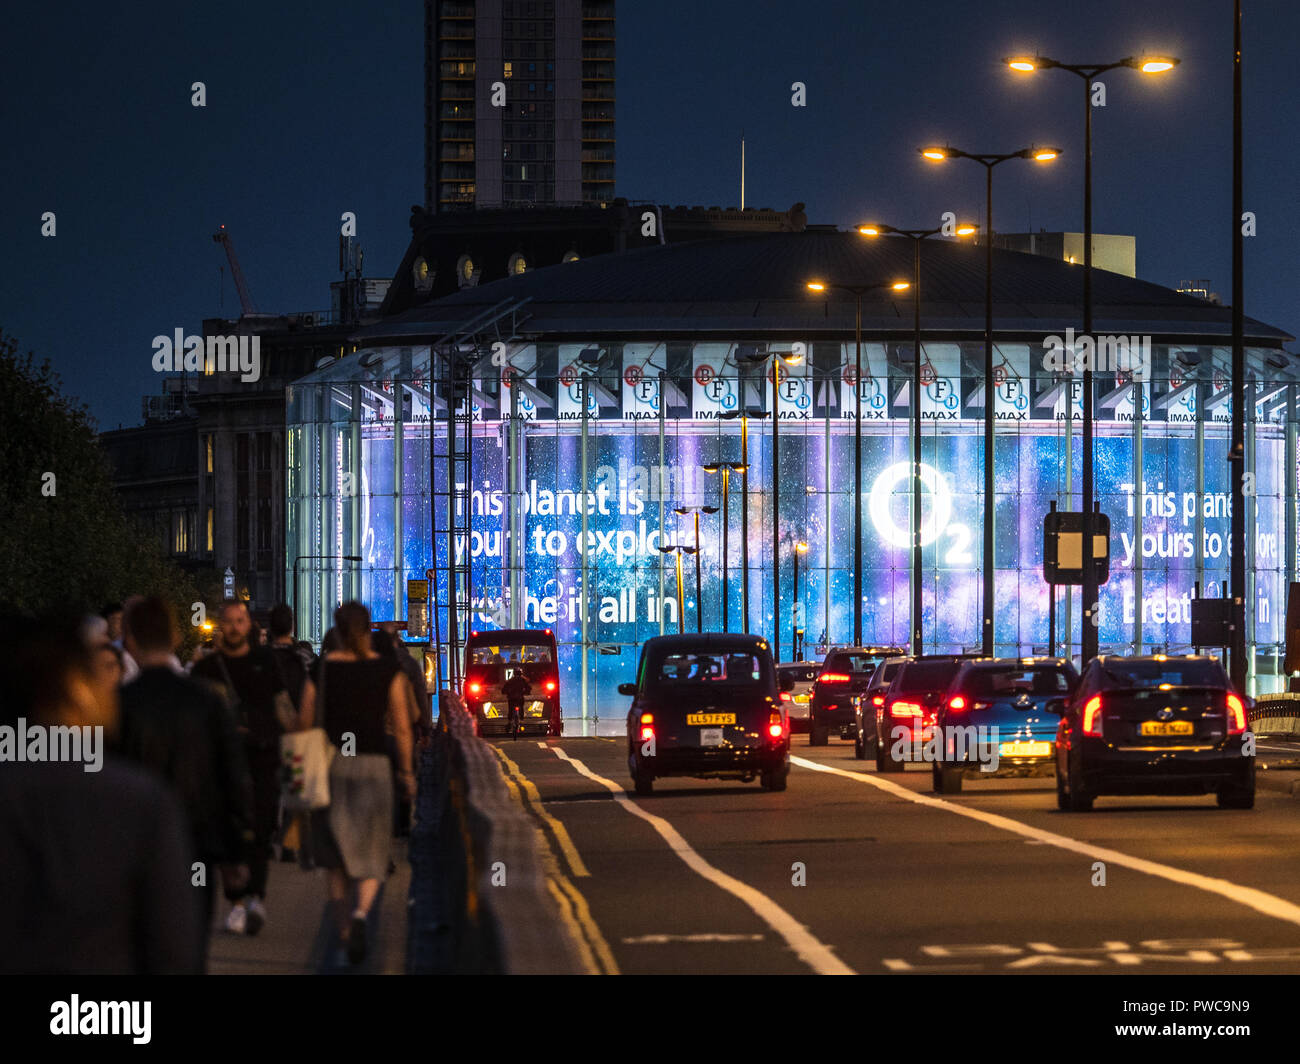 BFI IMAX cinema on London SouthBank across Waterloo Bridge, designed by Avery Associates Architects completed in May 1999. Operated by Odeon Cinemas. - Stock Image